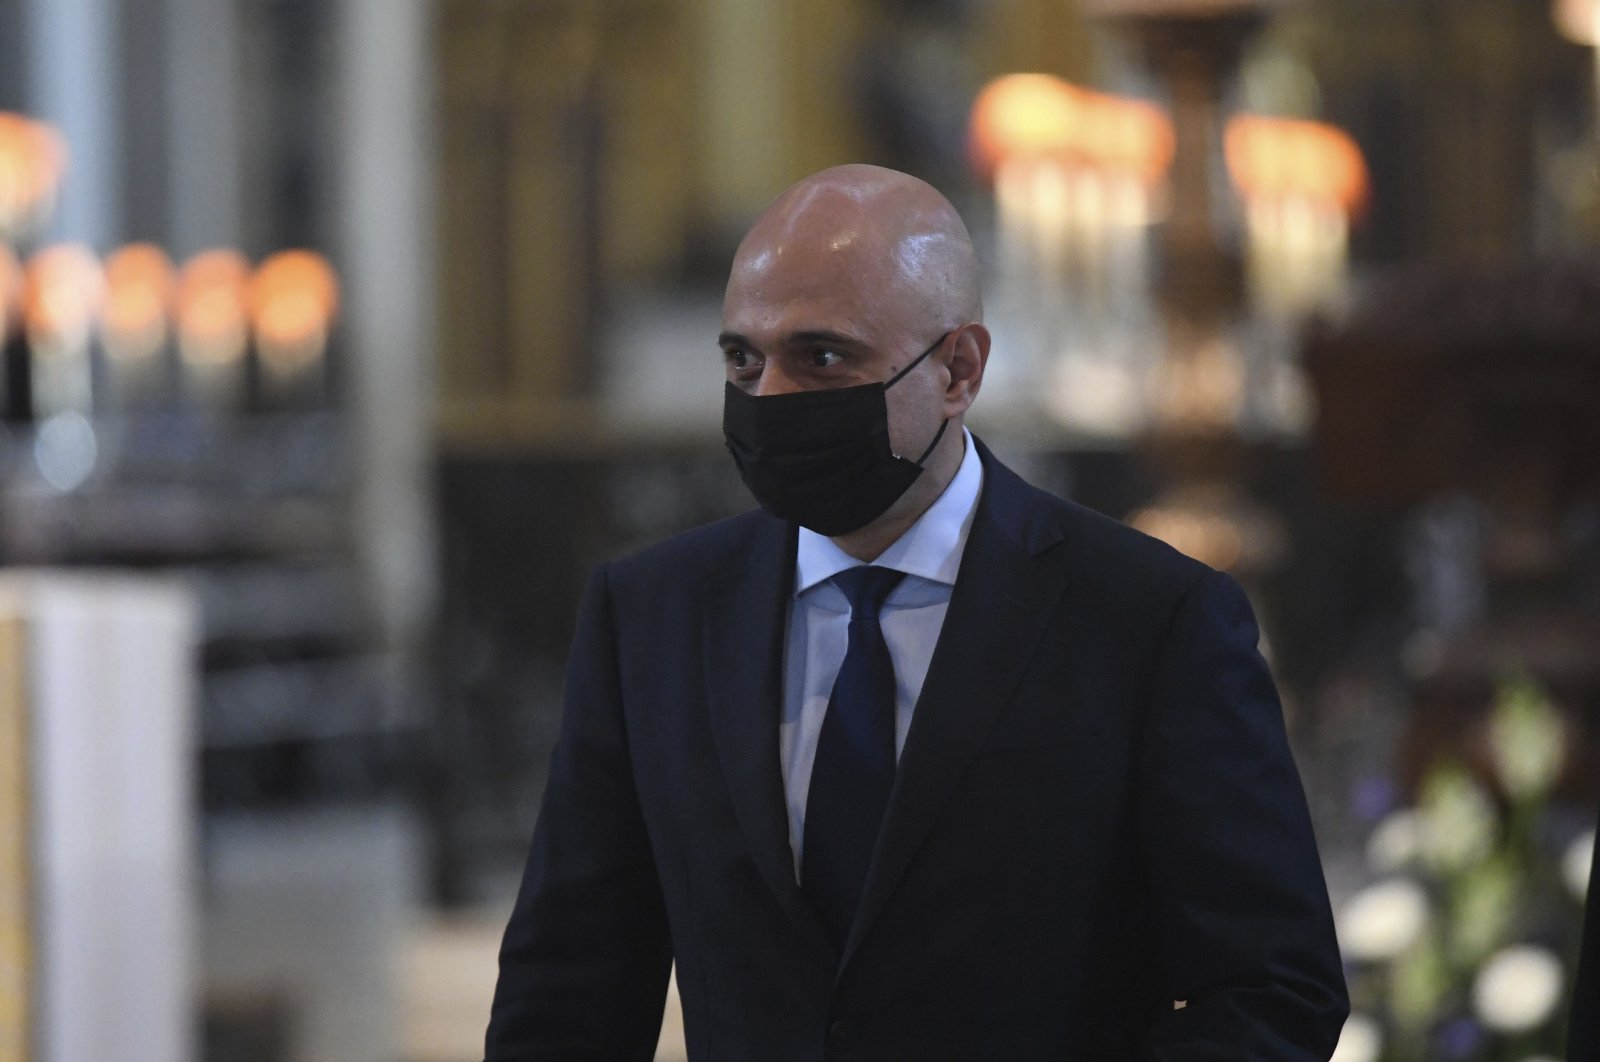 Britain's Health Secretary Sajid Javid arrives at St Paul's Cathedral ahead of the NHS service of commemoration and thanksgiving to mark the 73rd birthday of the NHS, London, U.K., July 5, 2021. (Stefan Rousseau/Pool via AP)